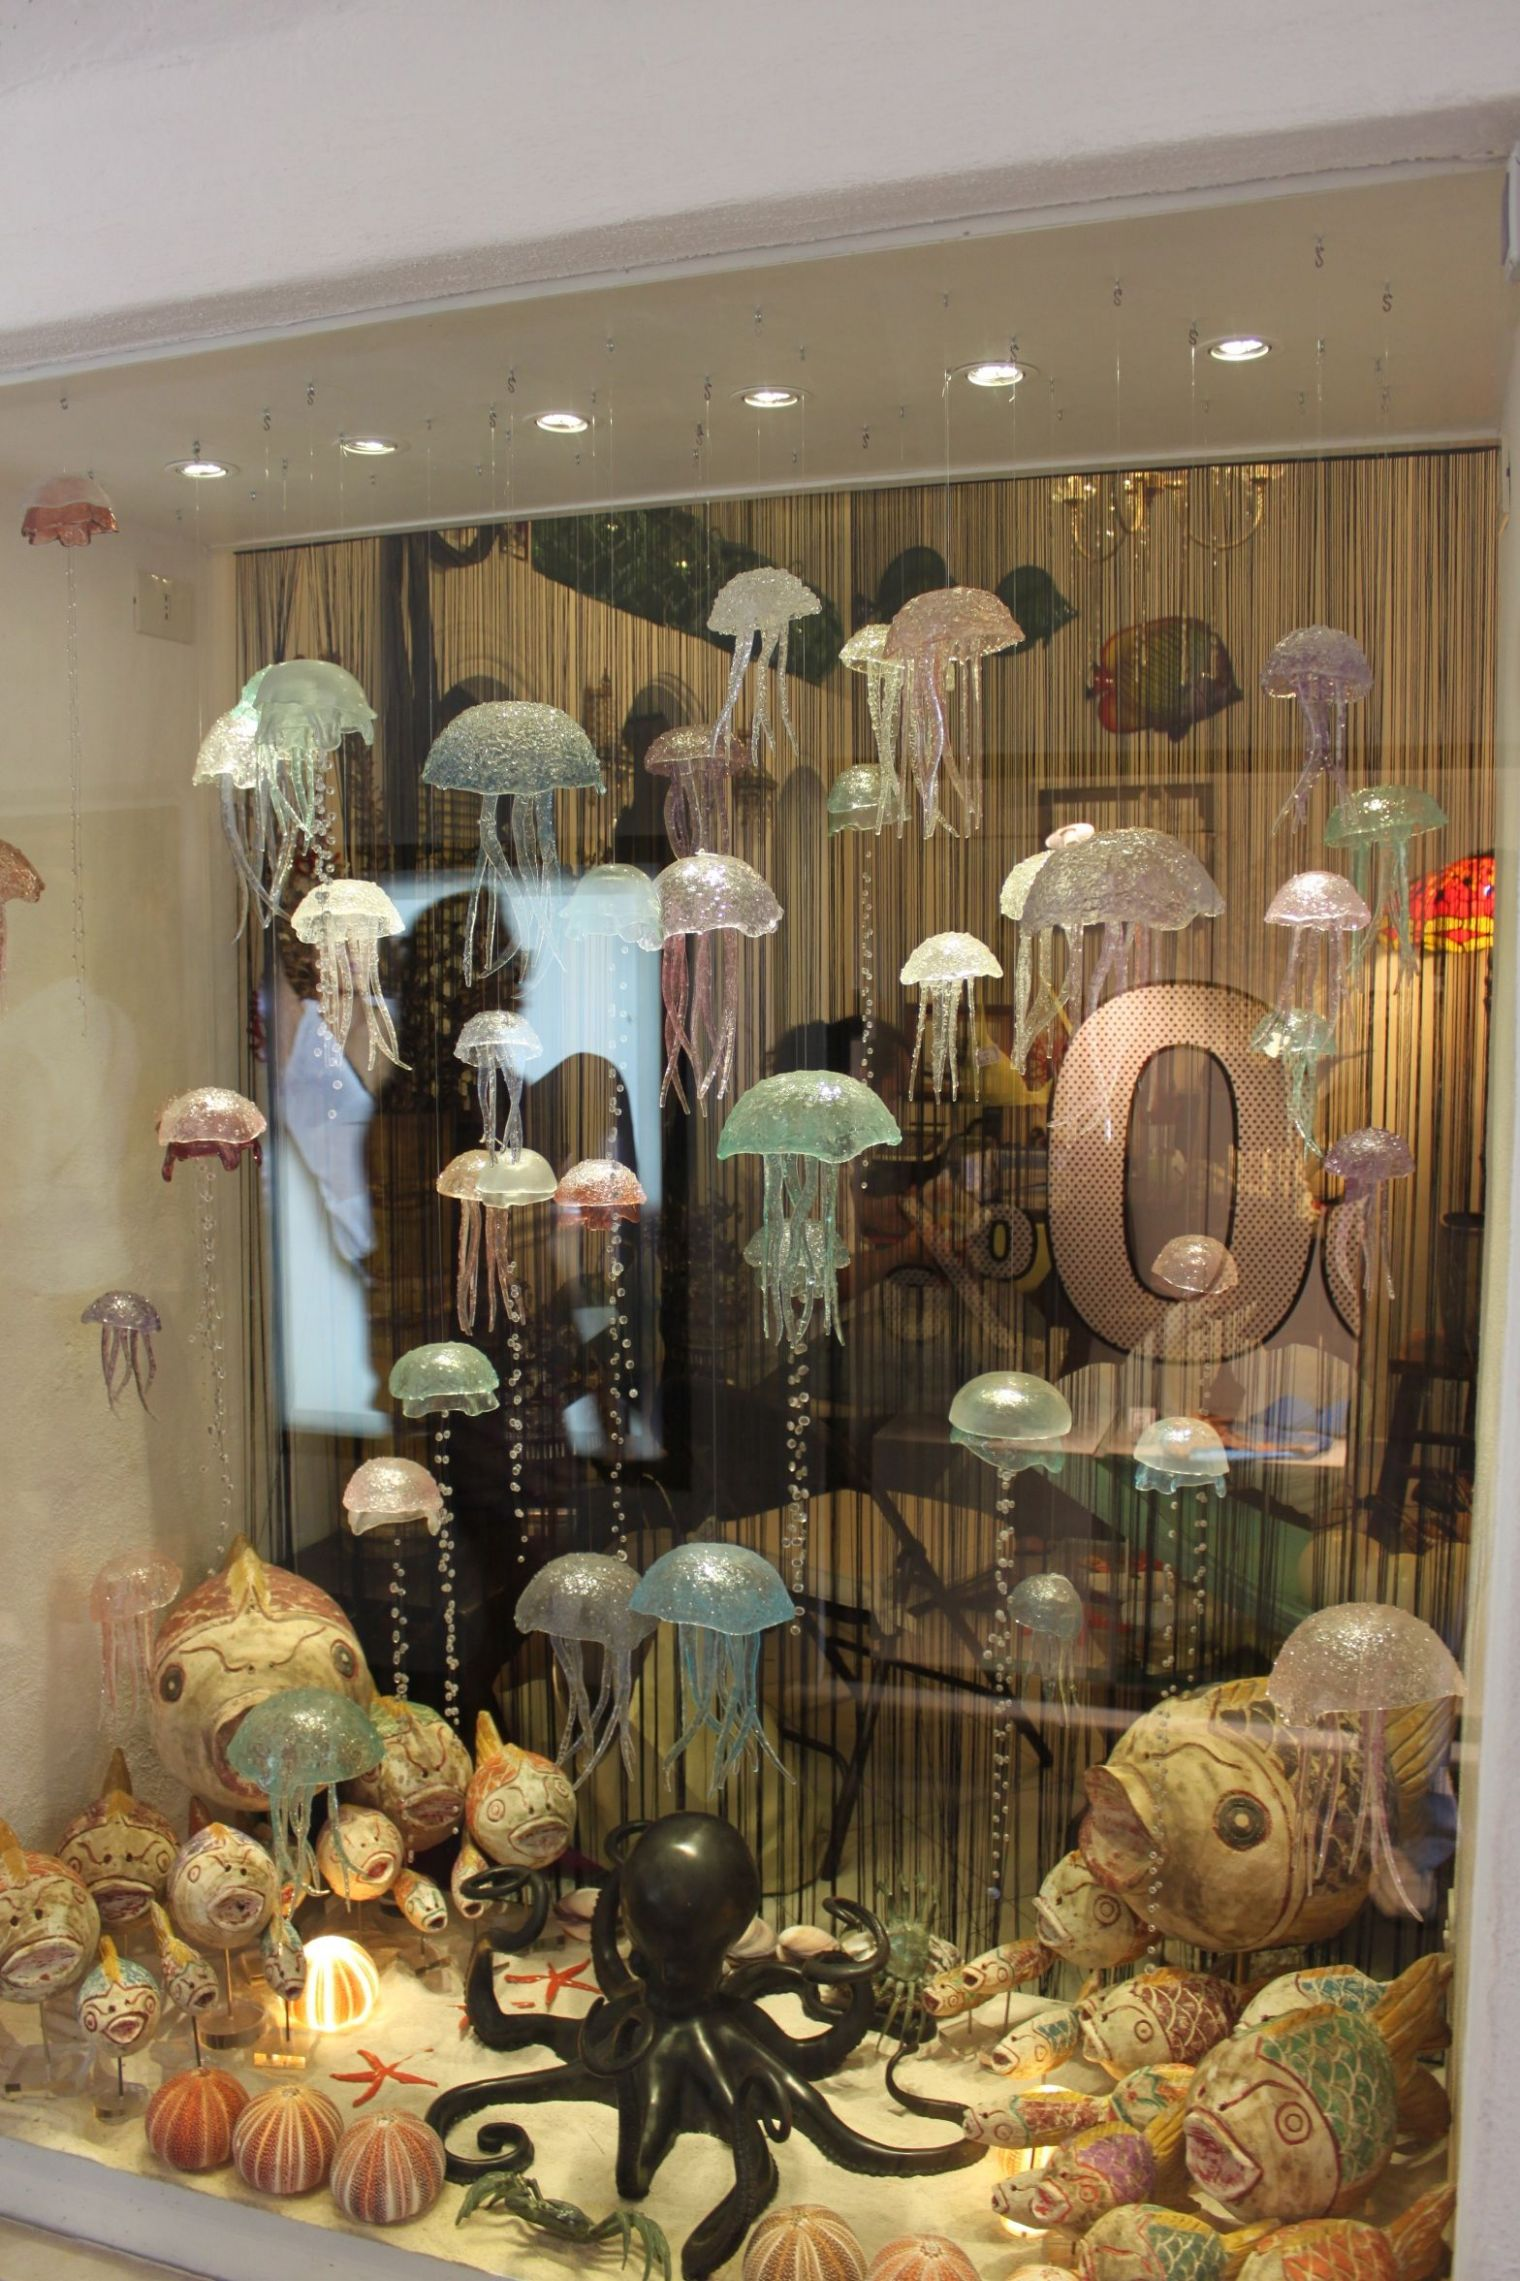 Floating glass jelly fish window display | Window display, Shop ..